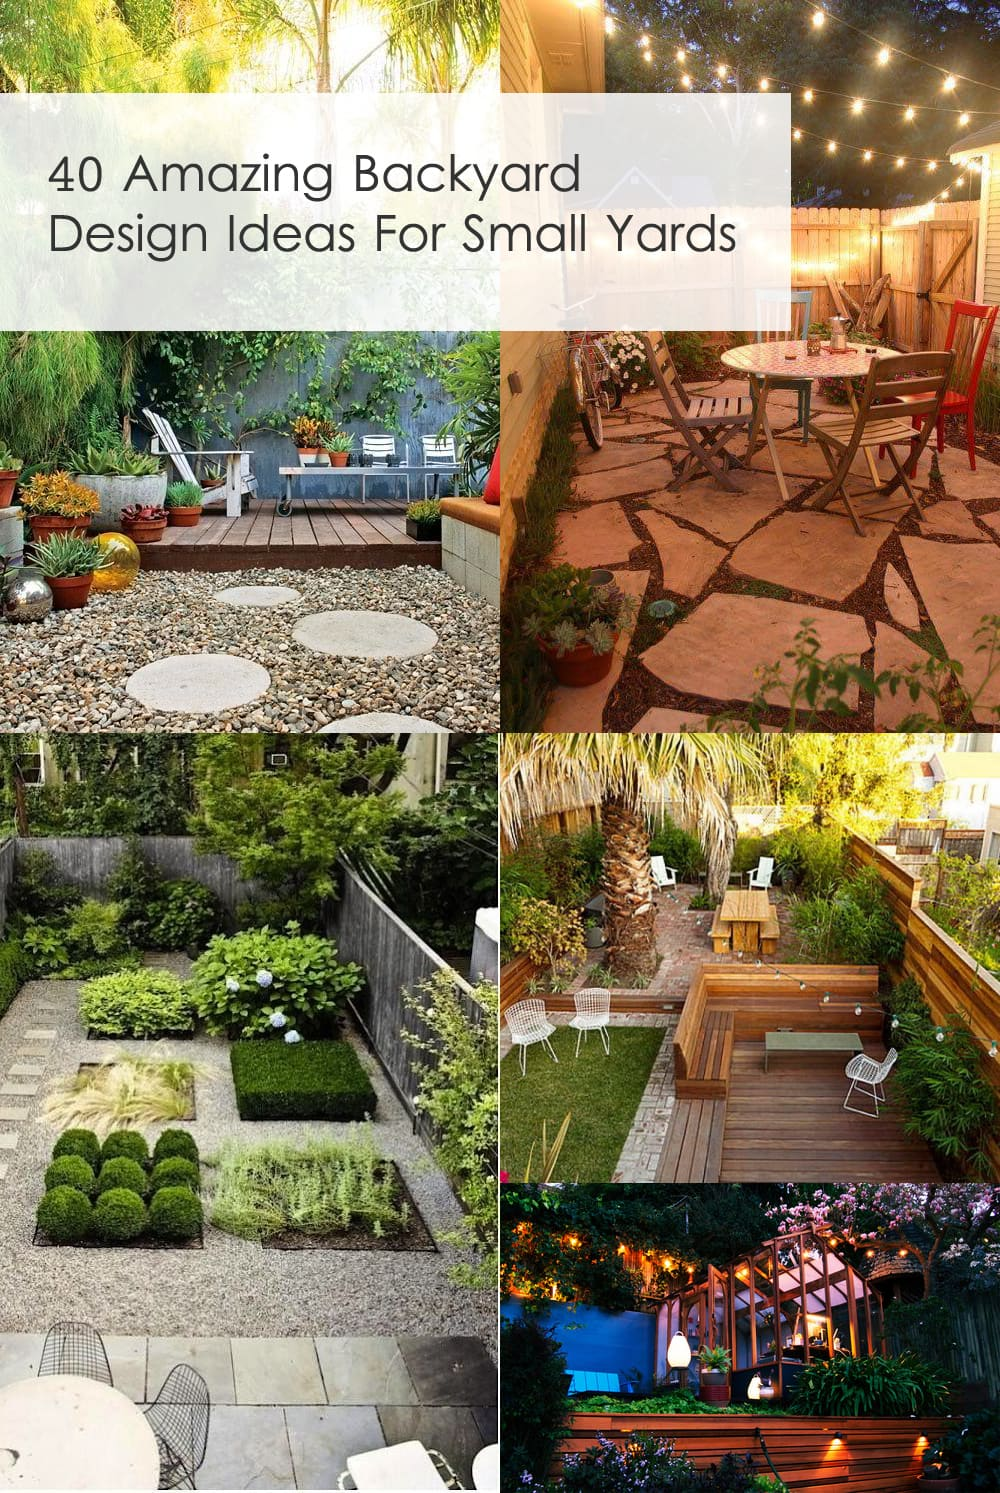 40 Amazing Design Ideas For Small Backyards on Small Backyard Layout id=60381